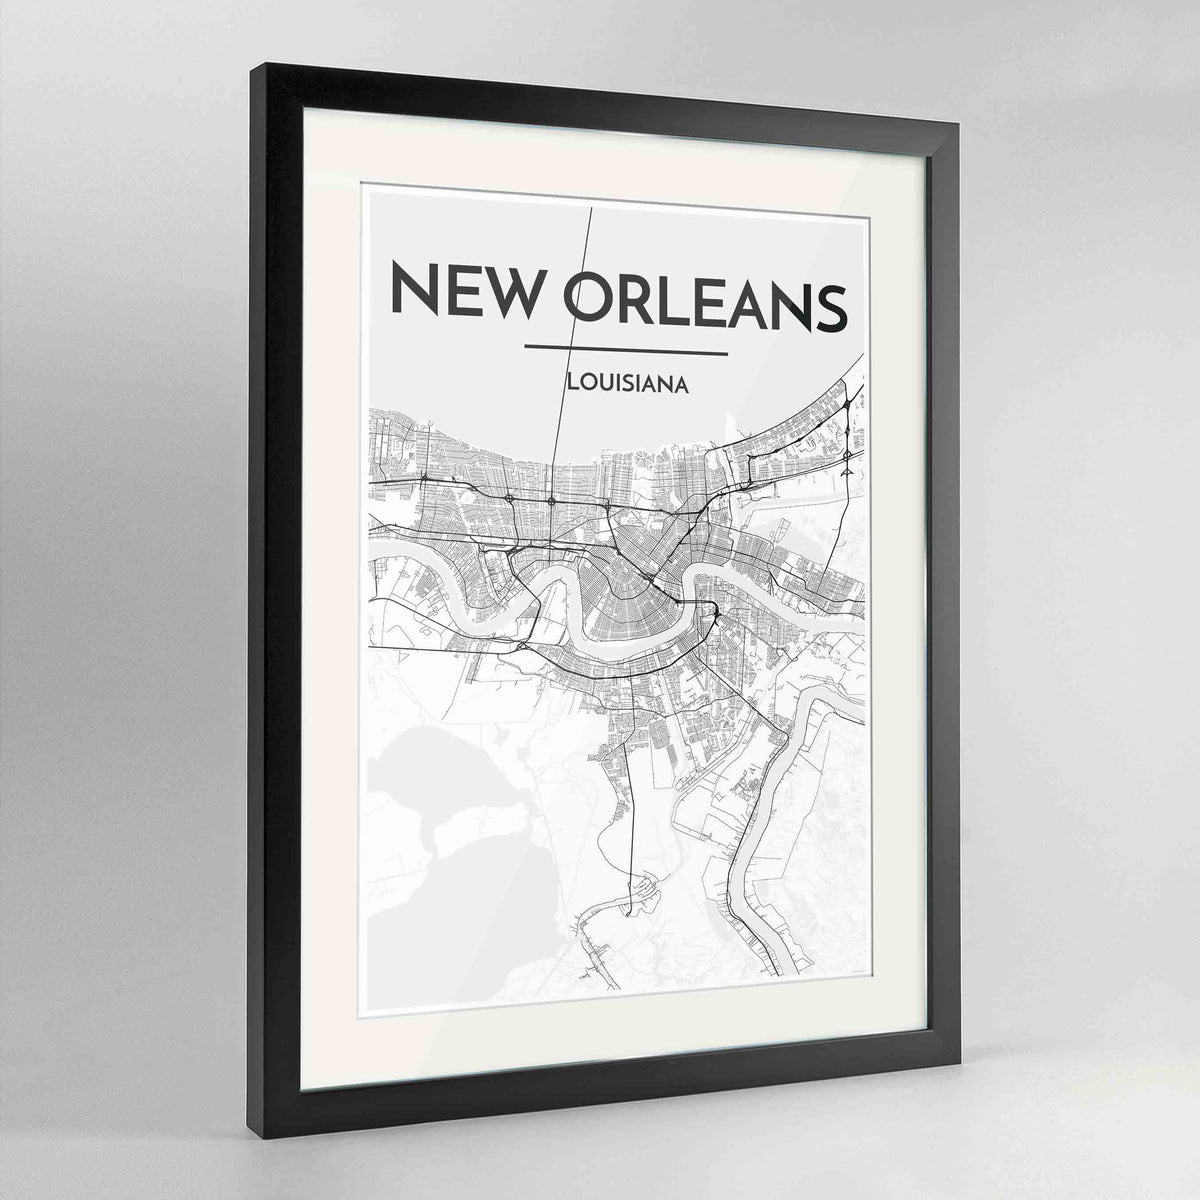 "Framed New Orleans Map Art Print 24x36"" Contemporary Black frame Point Two Design Group"